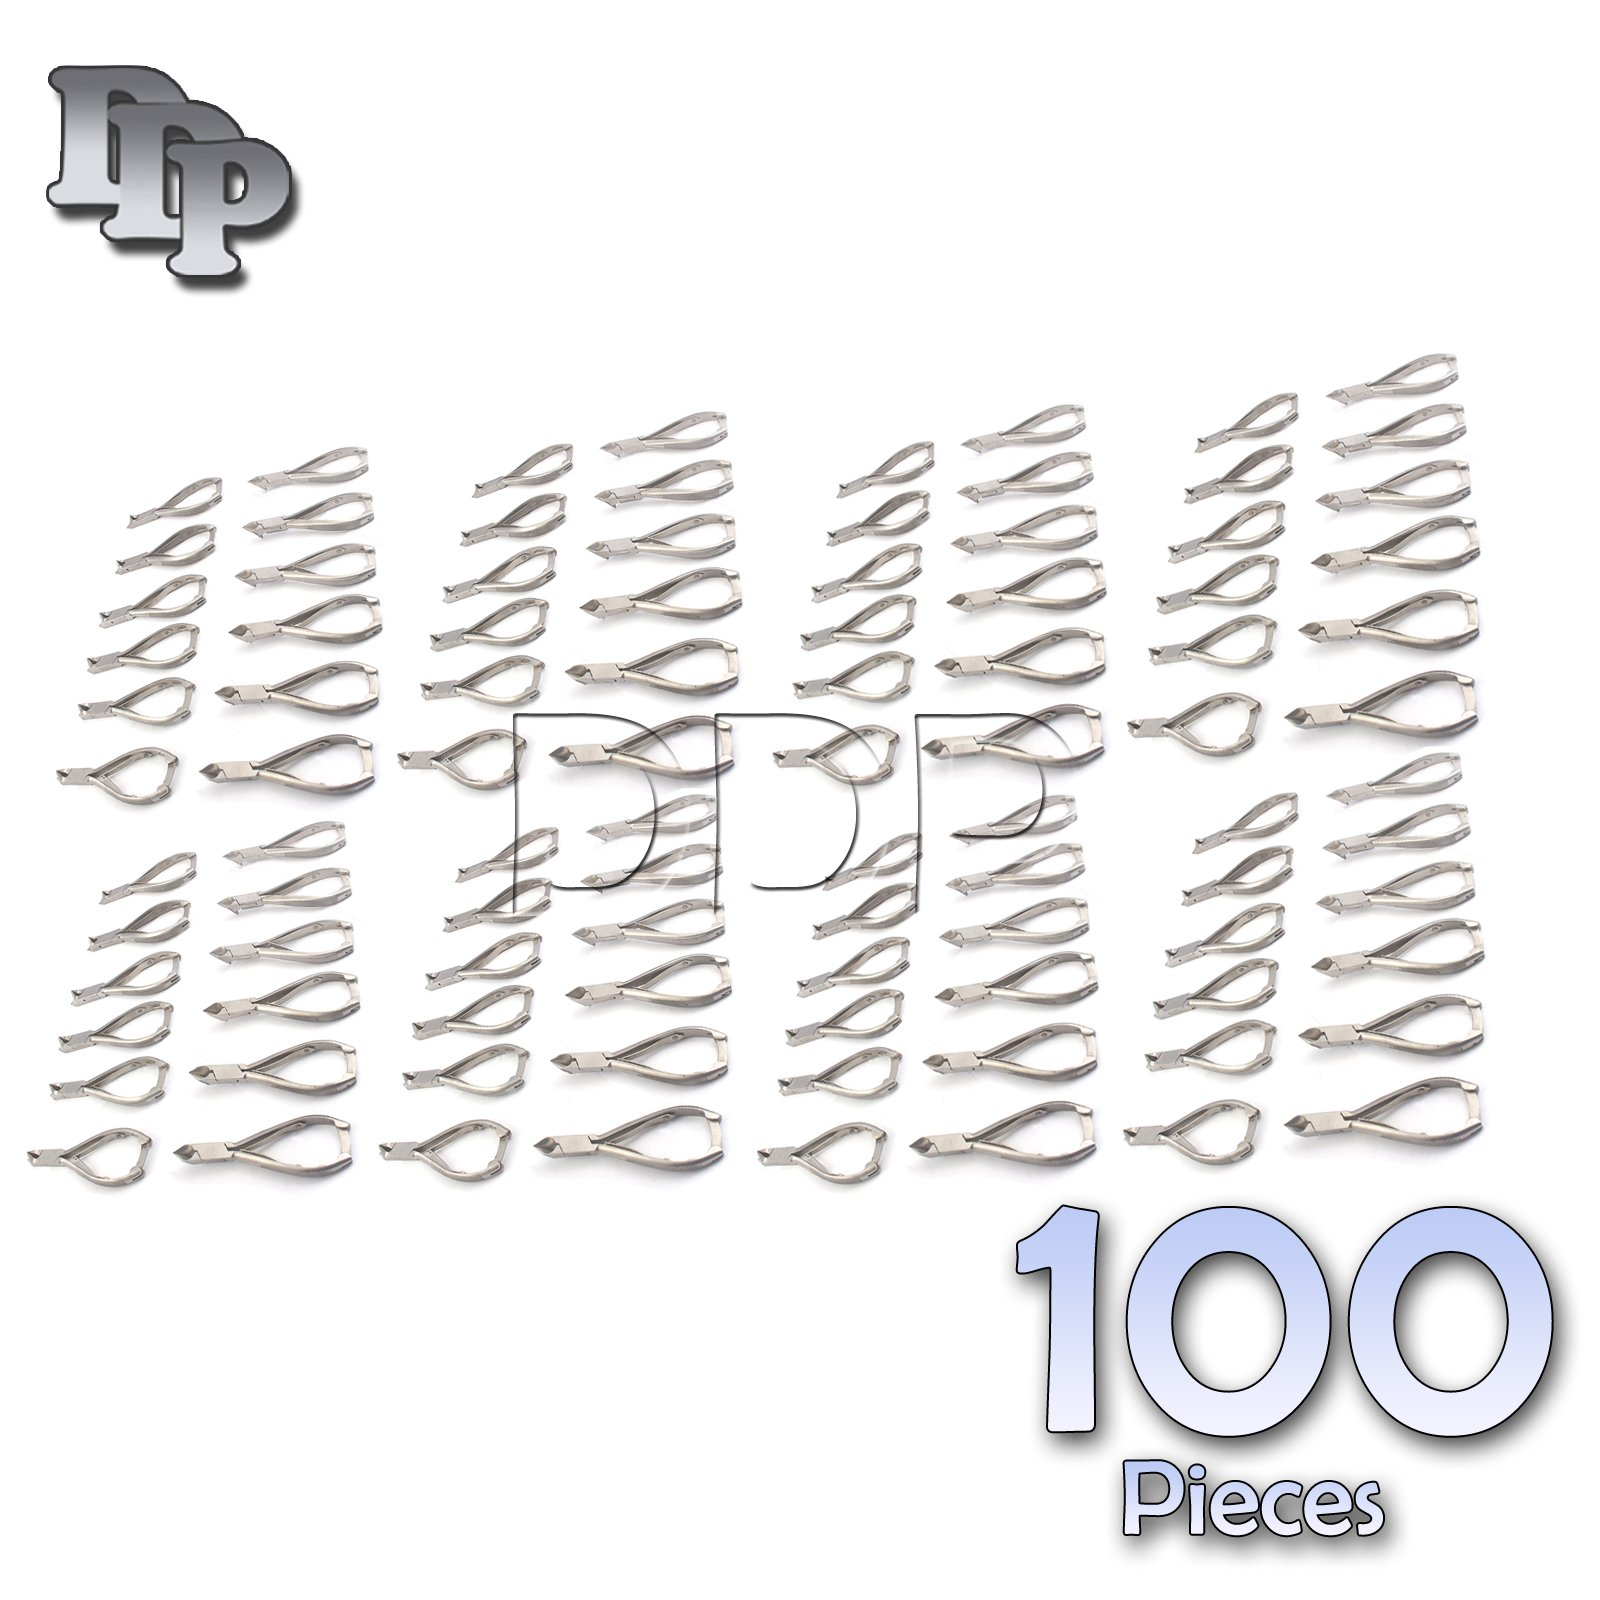 DDP SET OF 100 PROFESSIONAL MOON SHAPE TOENAIL CLIPPER CUTTER CHIROPODY PODIATRY INSTRUMENTS